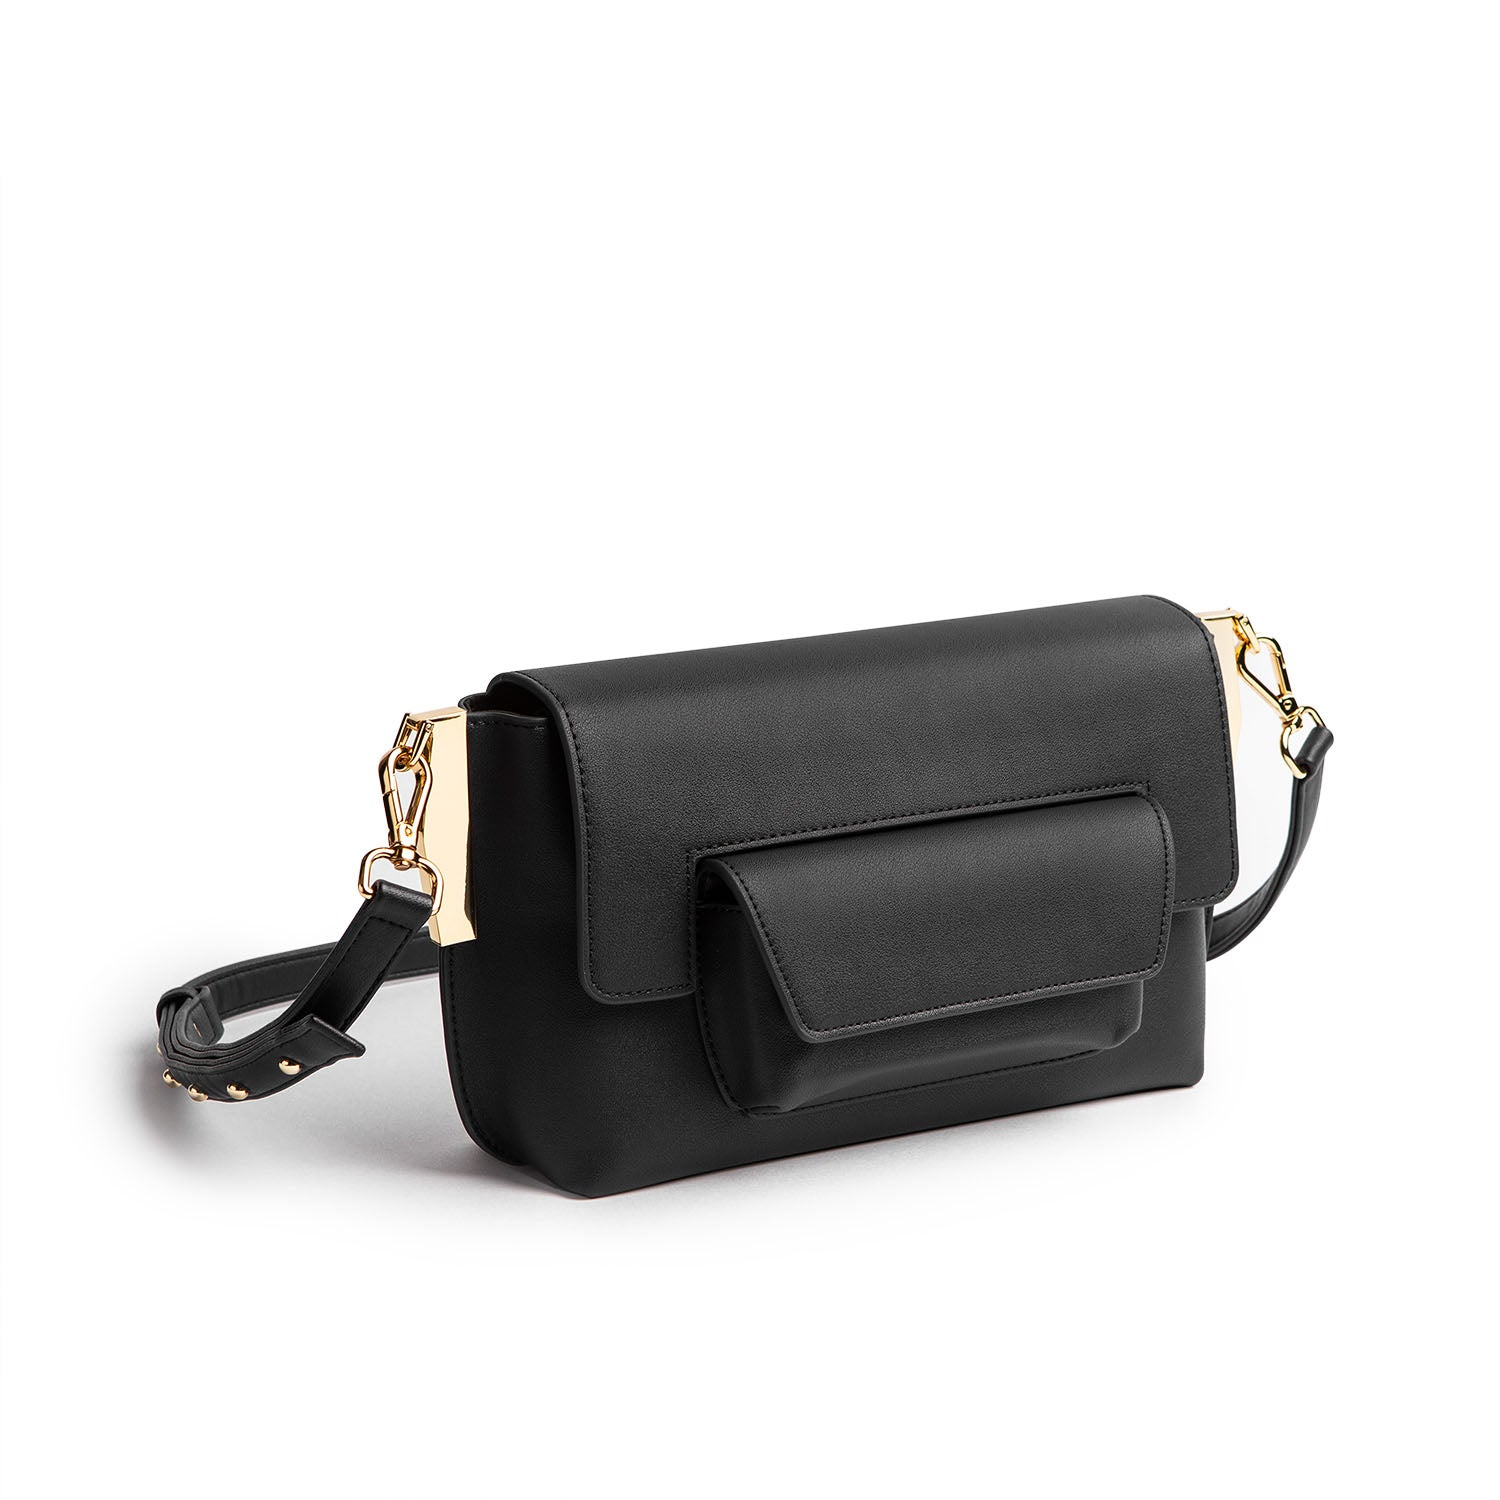 LOFARBAG 2 - BLACK